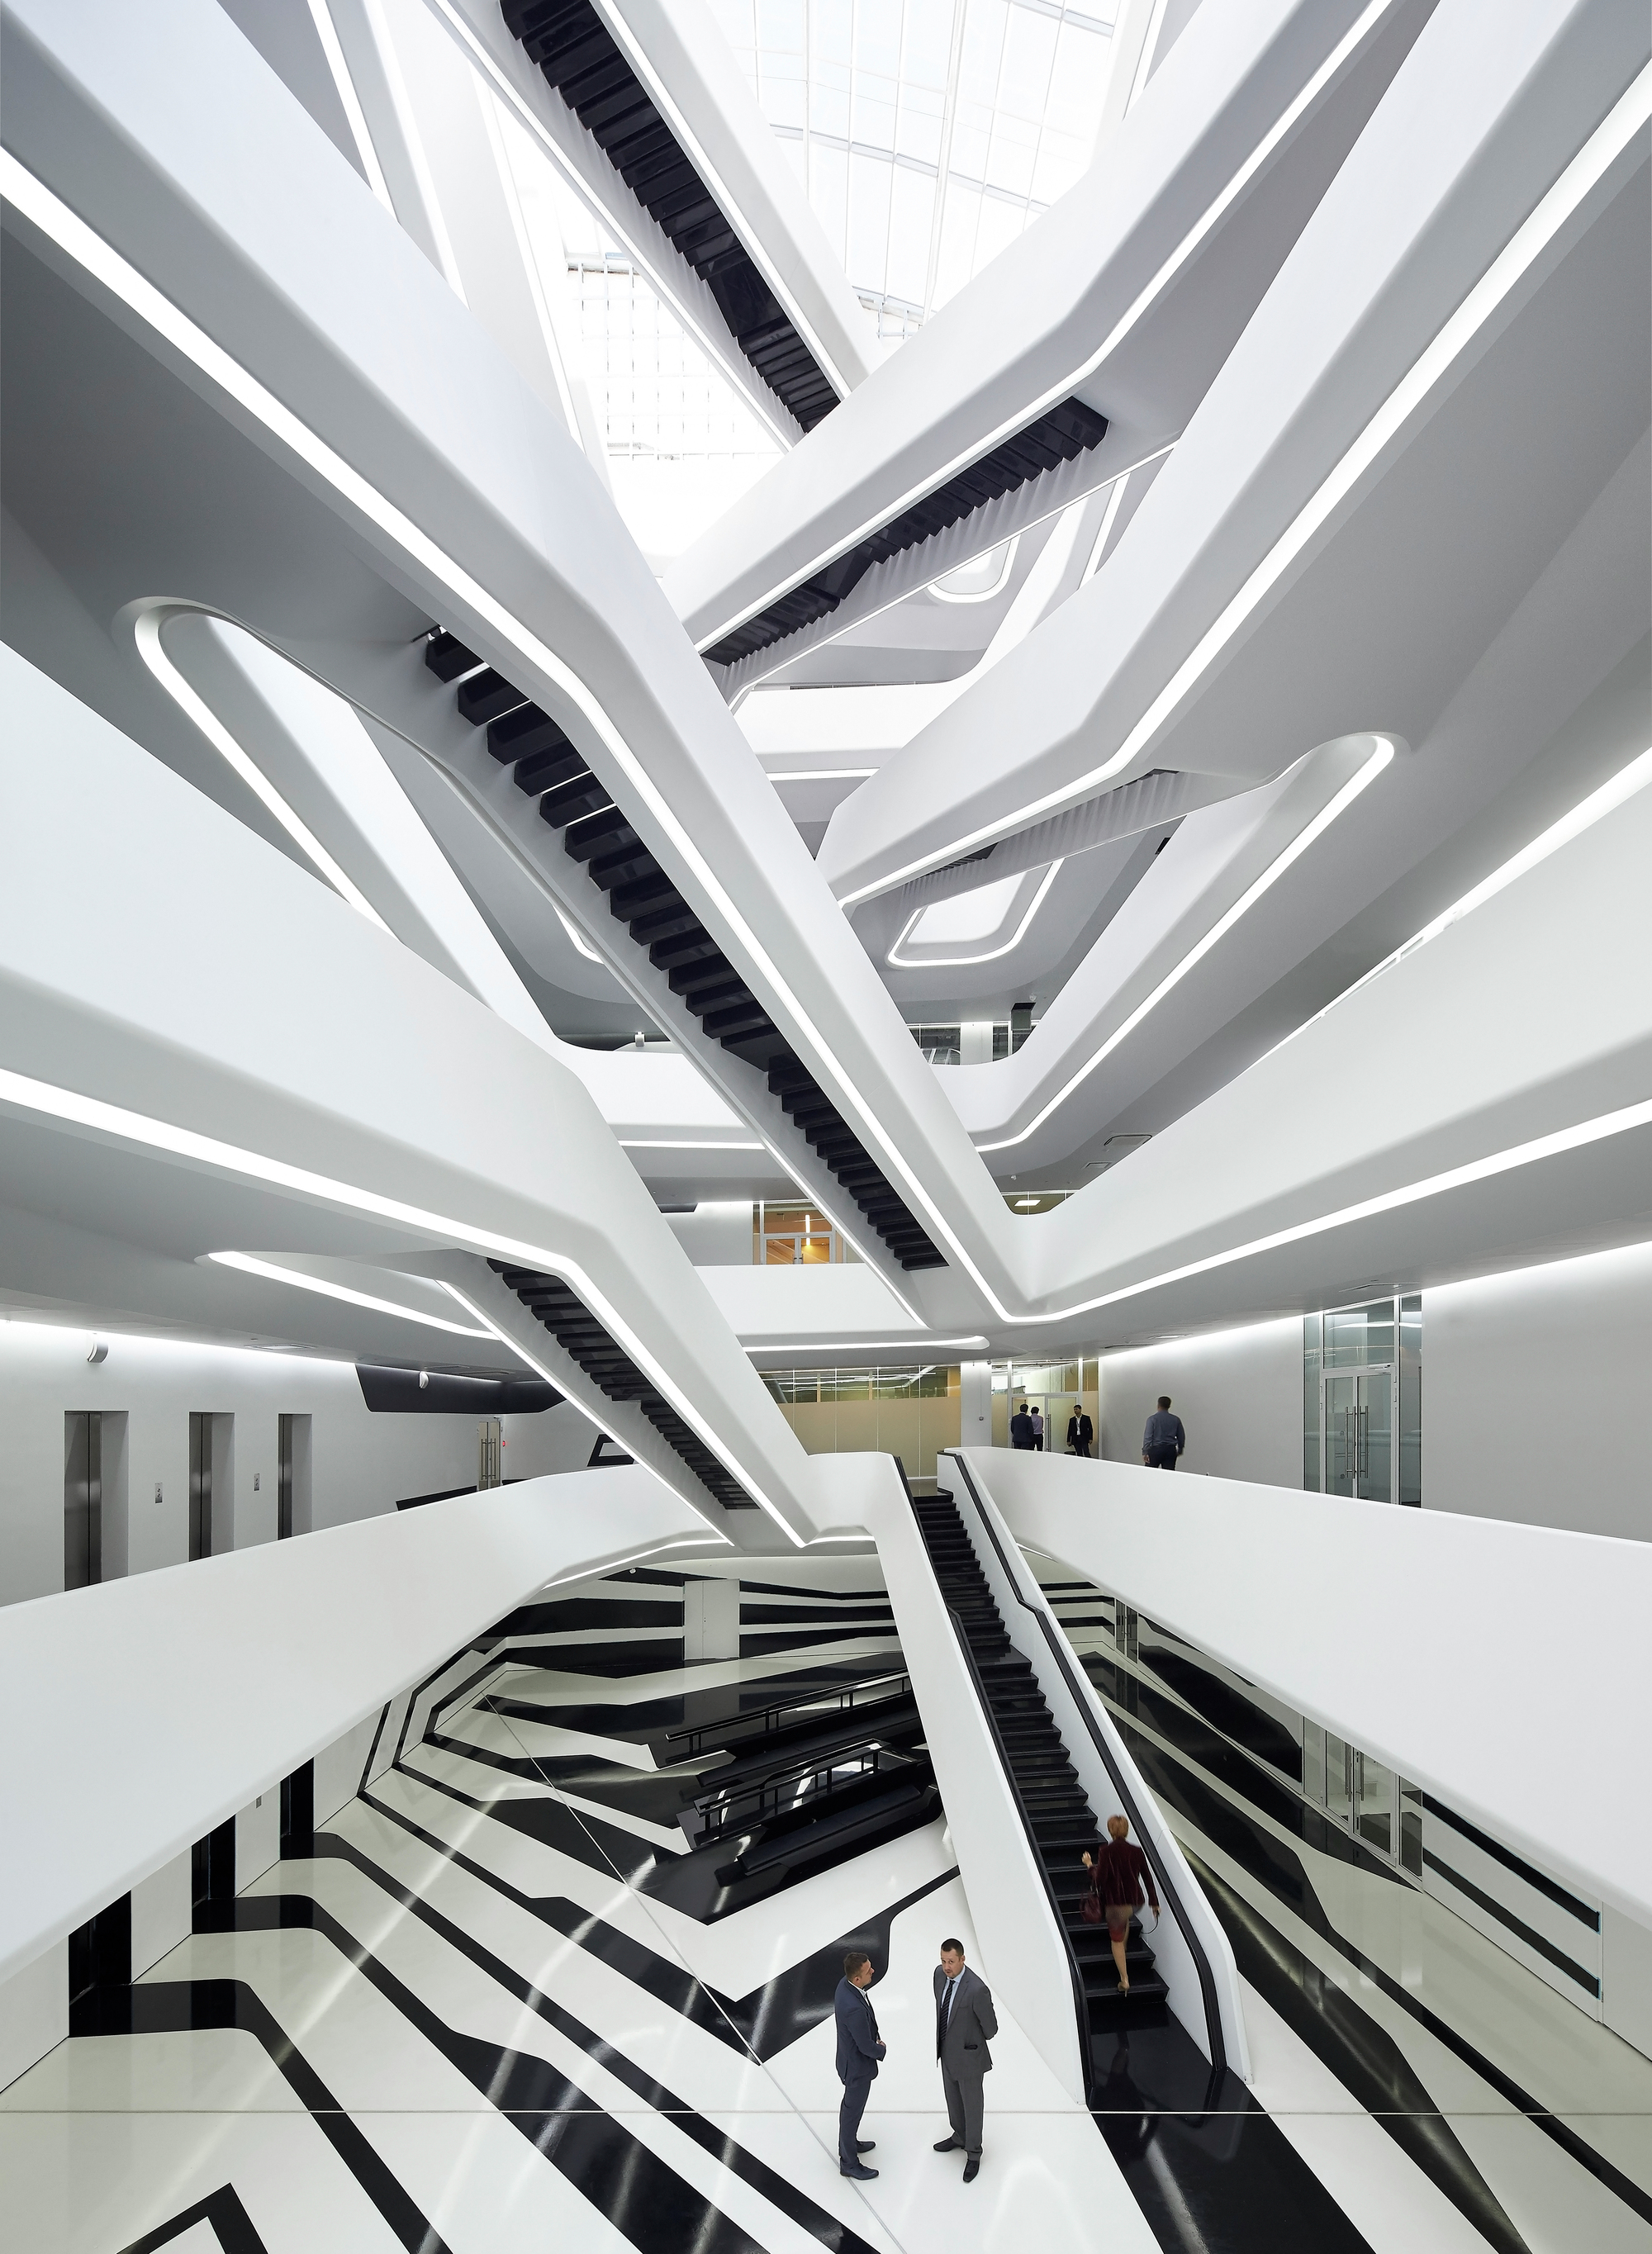 Dominion office building zaha hadid architects archdaily for Top interior architects